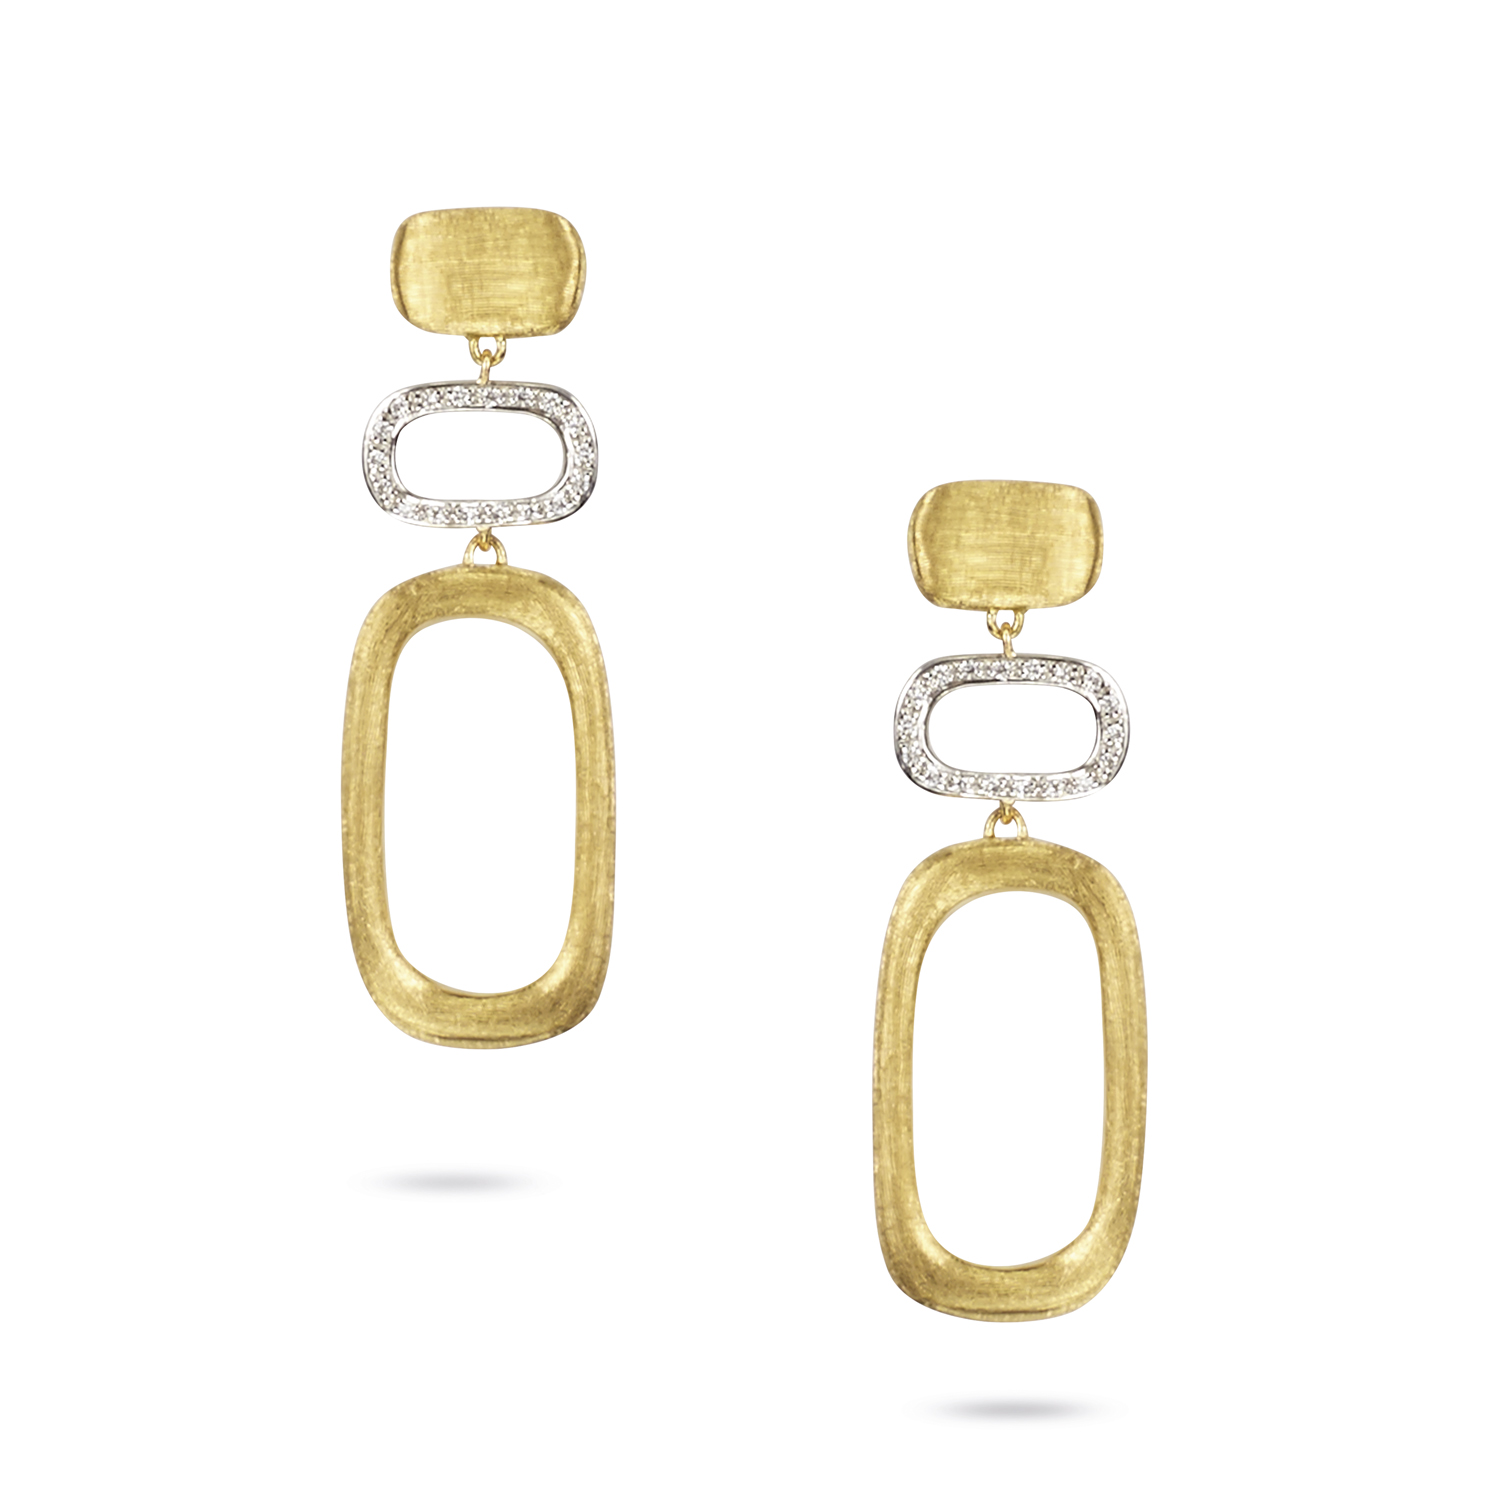 Marco Bicego Murano Link Long Earrings